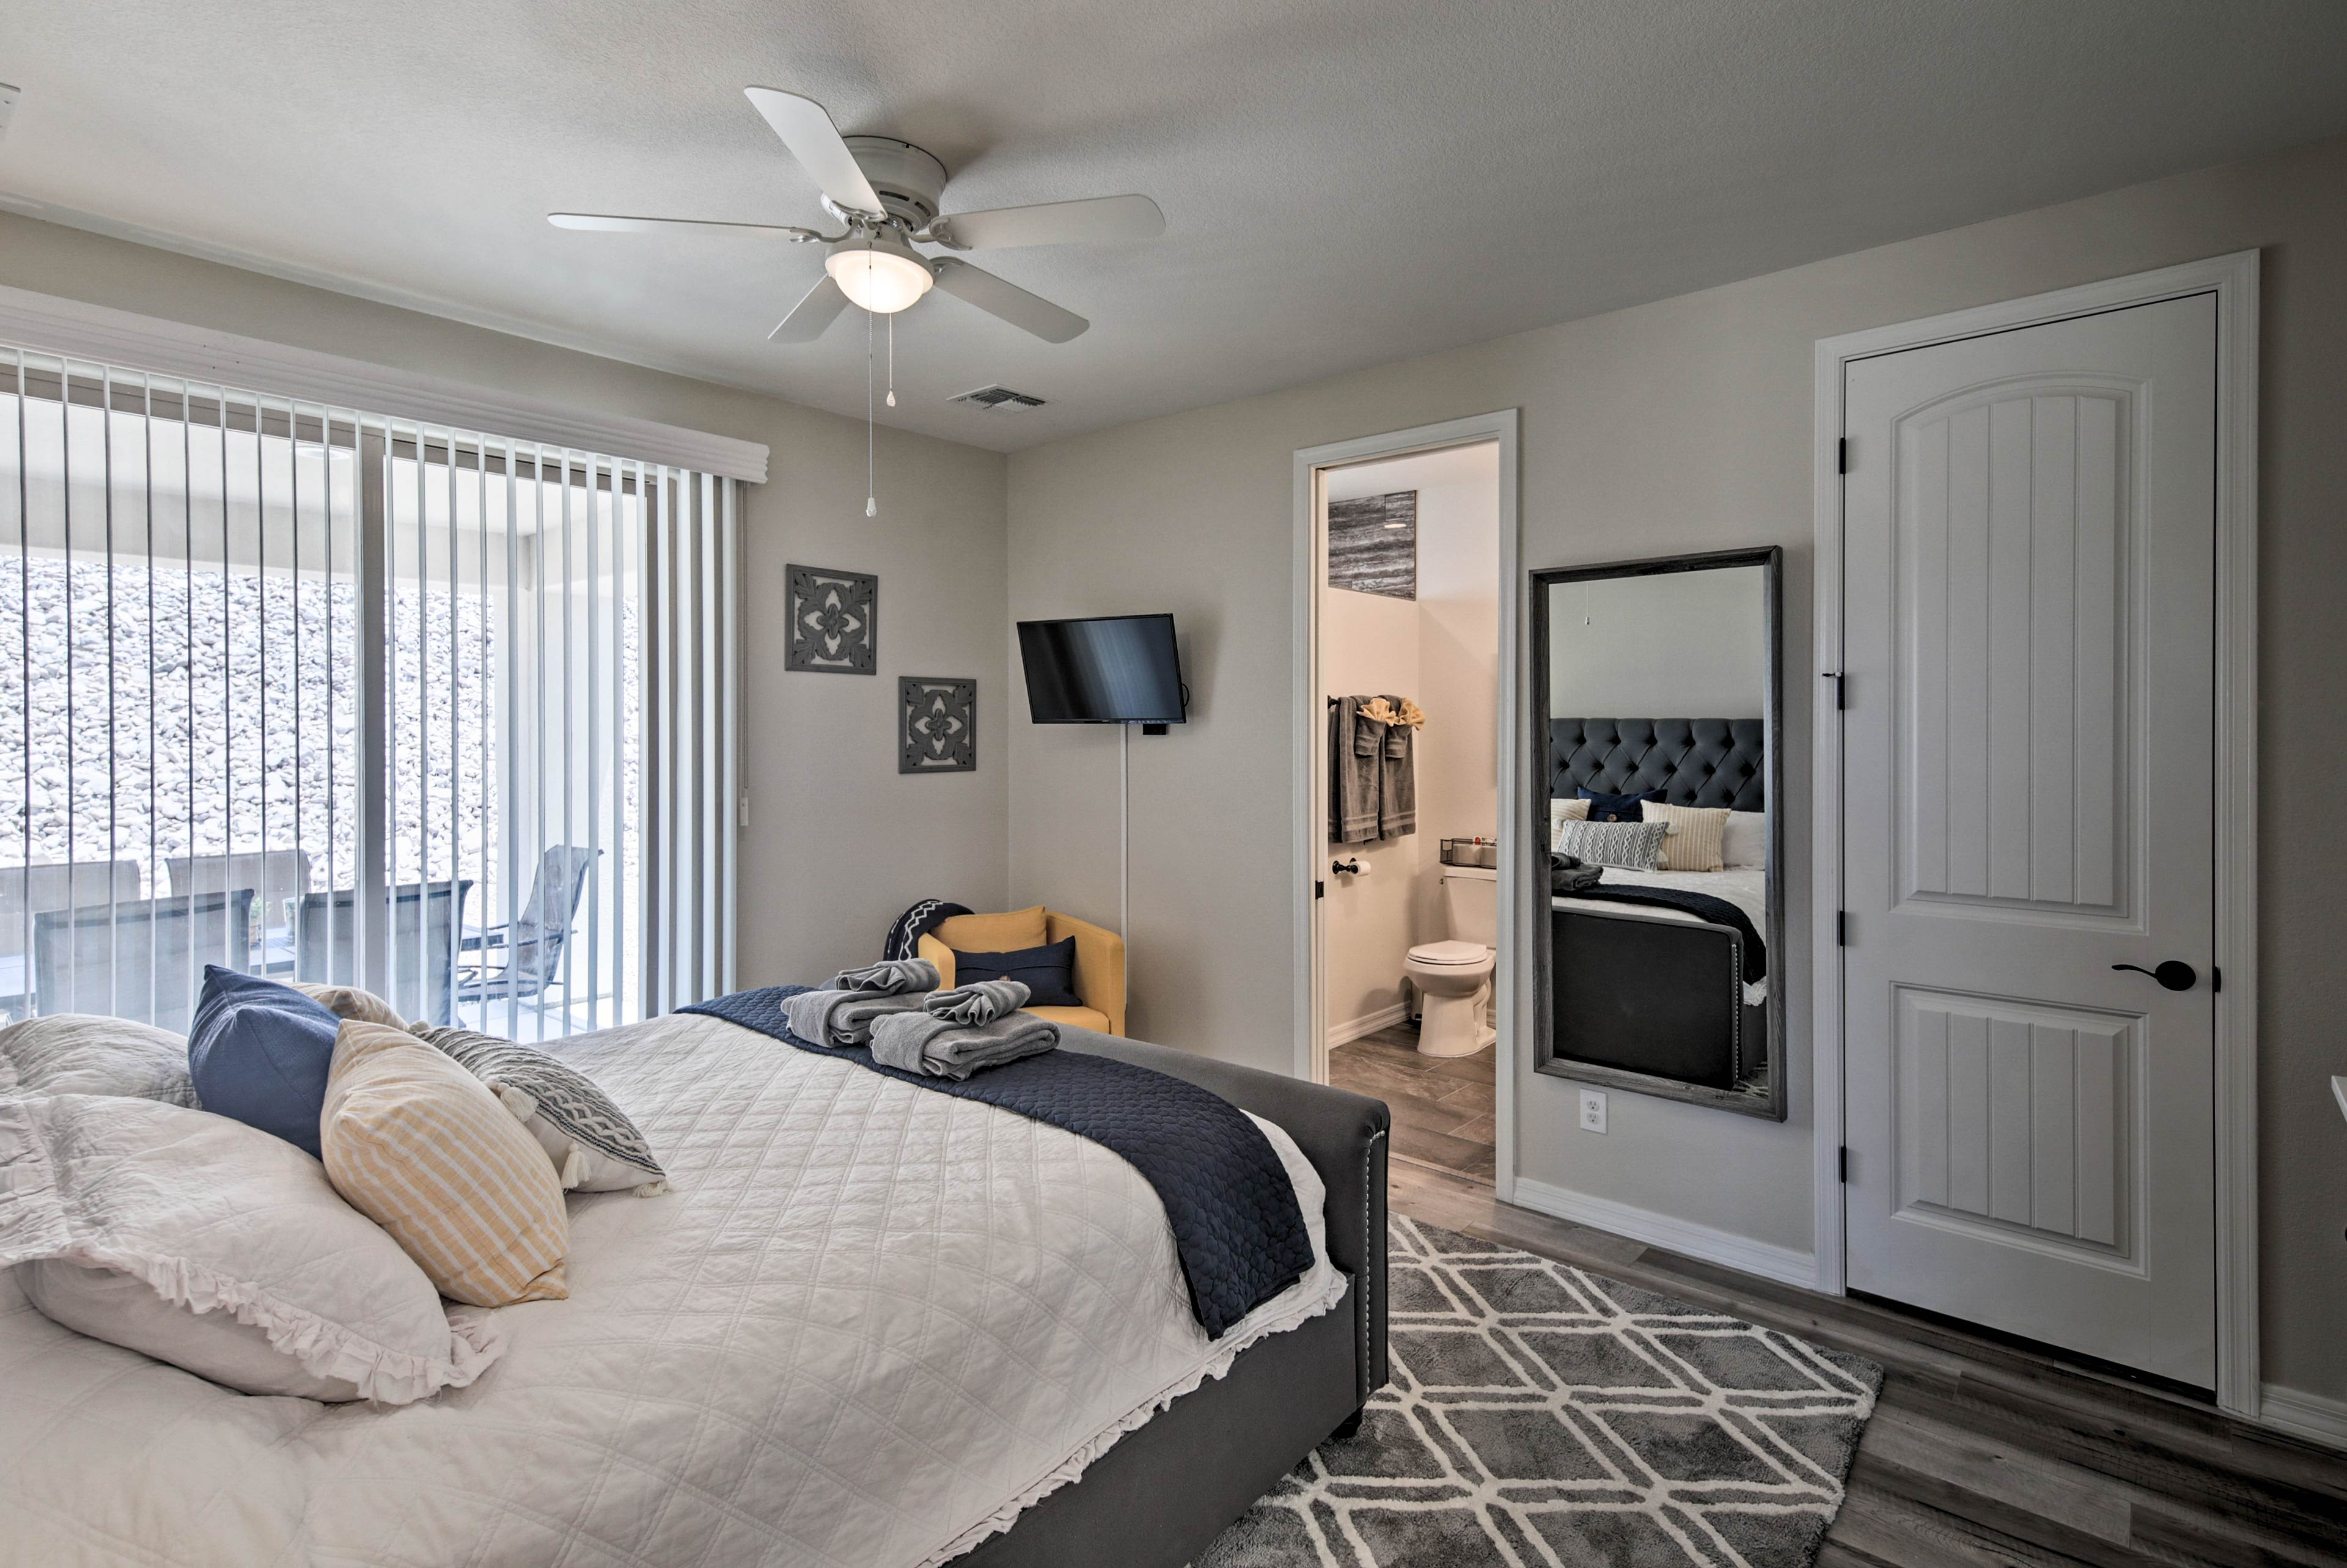 Relax in the master bedroom's California King-sized bed.